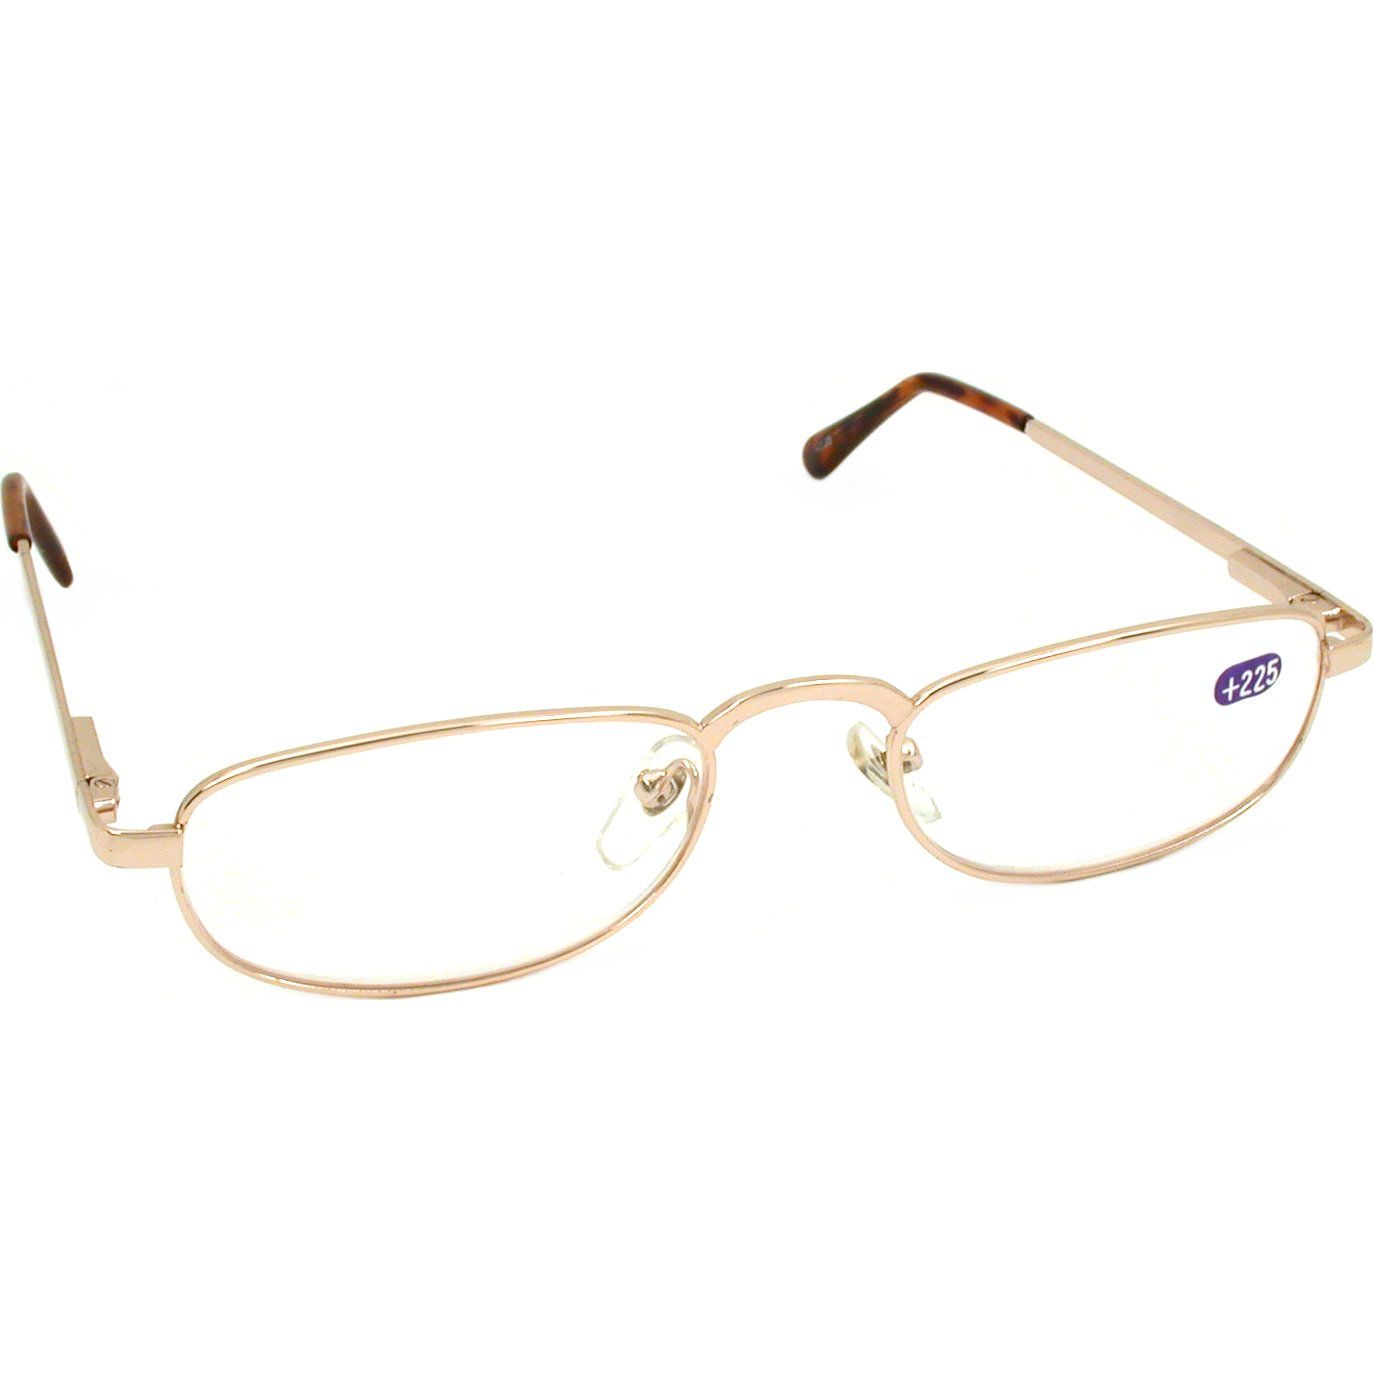 2.25X Gold Colored Half Frame Reading Glasses eBay